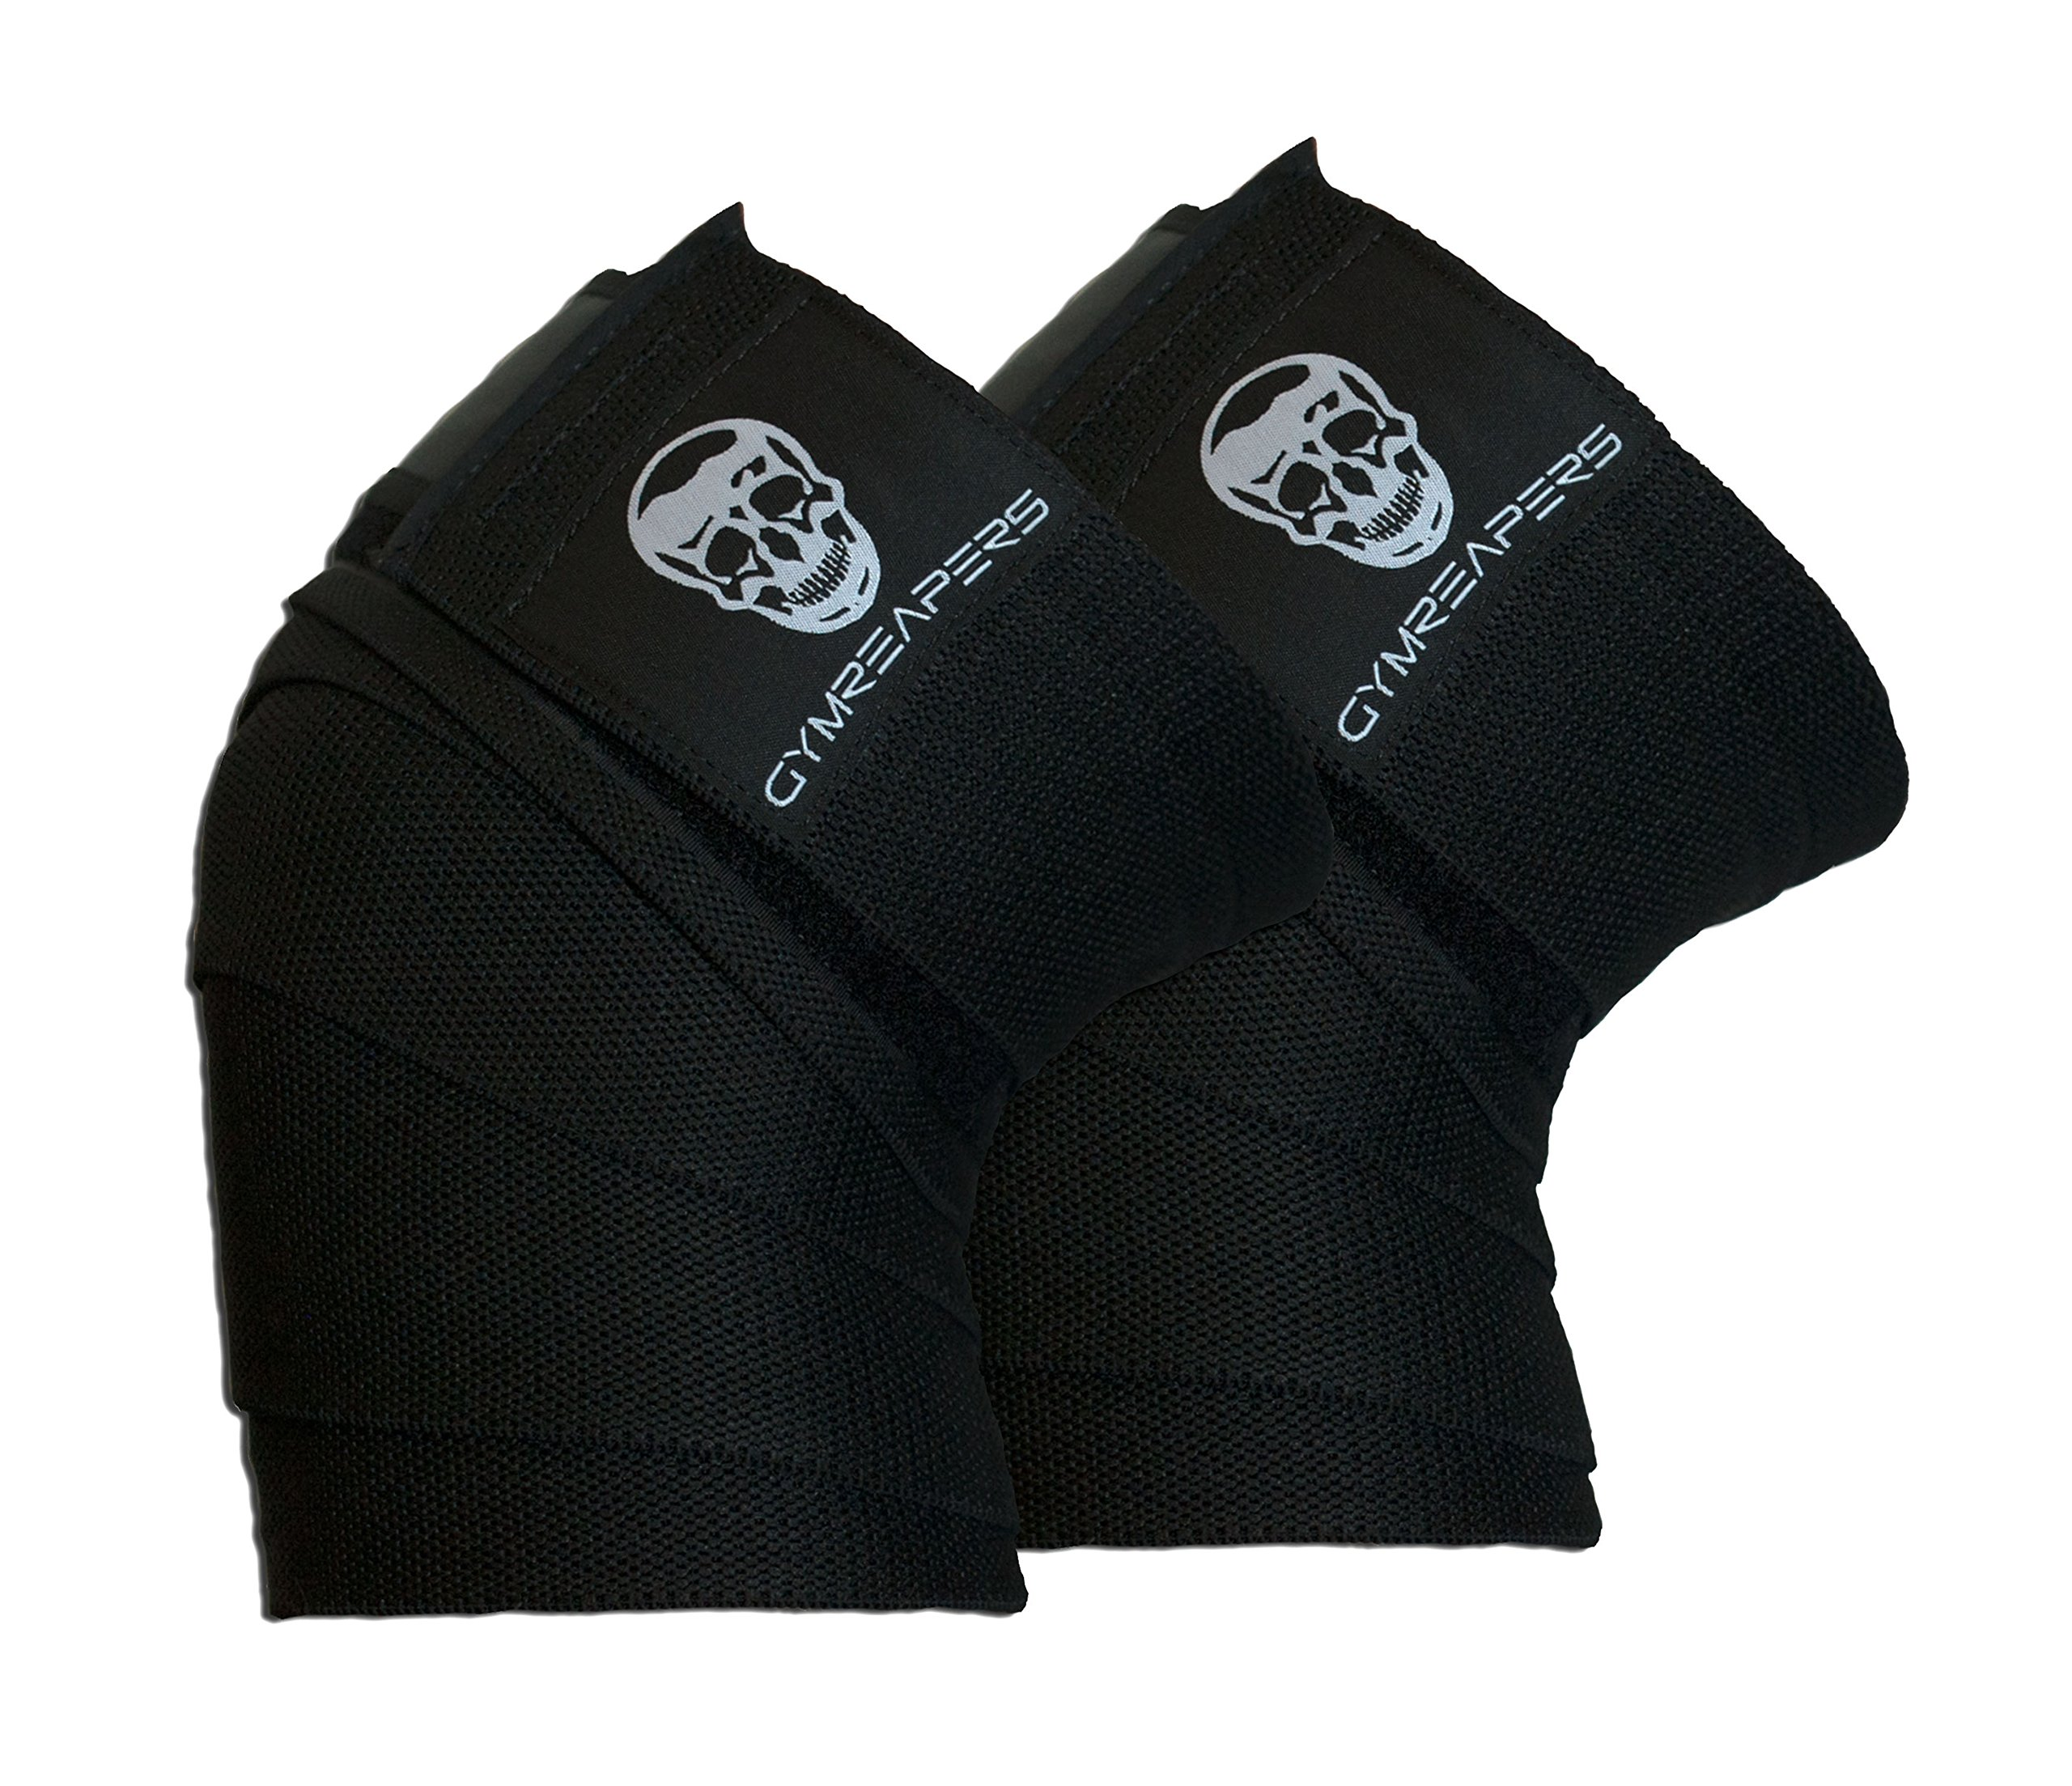 Gymreapers Knee Wraps (Pair) with Strap for Squats, Weightlifting, Powerlifting, Leg Press, and Cross Training - Flexible 72'' Knee Wraps for Squatting - for Men & Women - 1 Year Warranty (Black)